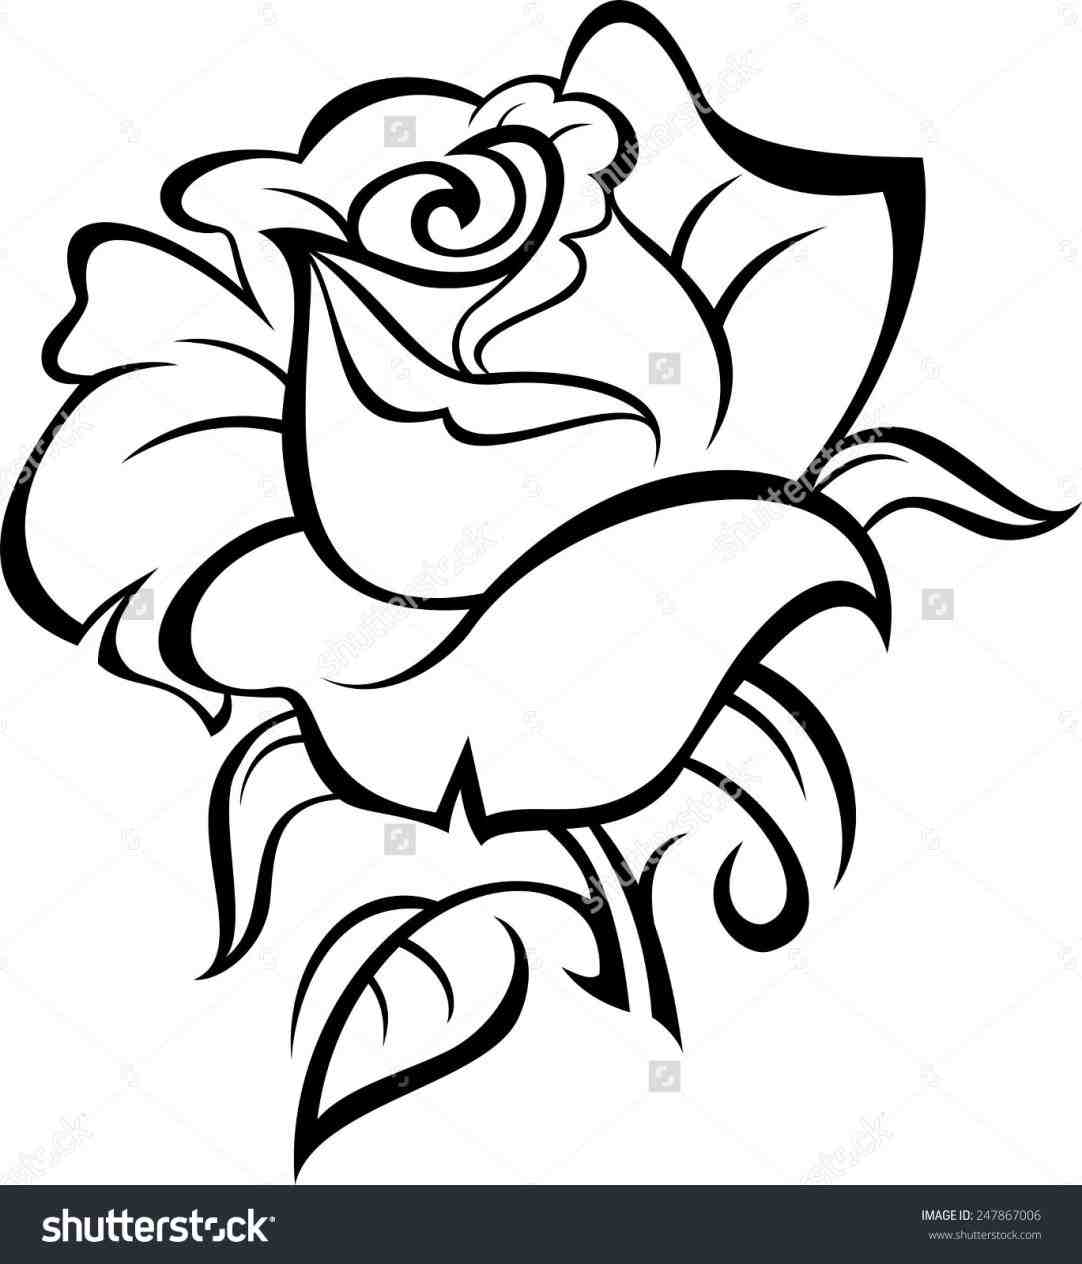 1082x1264 Rose Drawing Outline With Stem